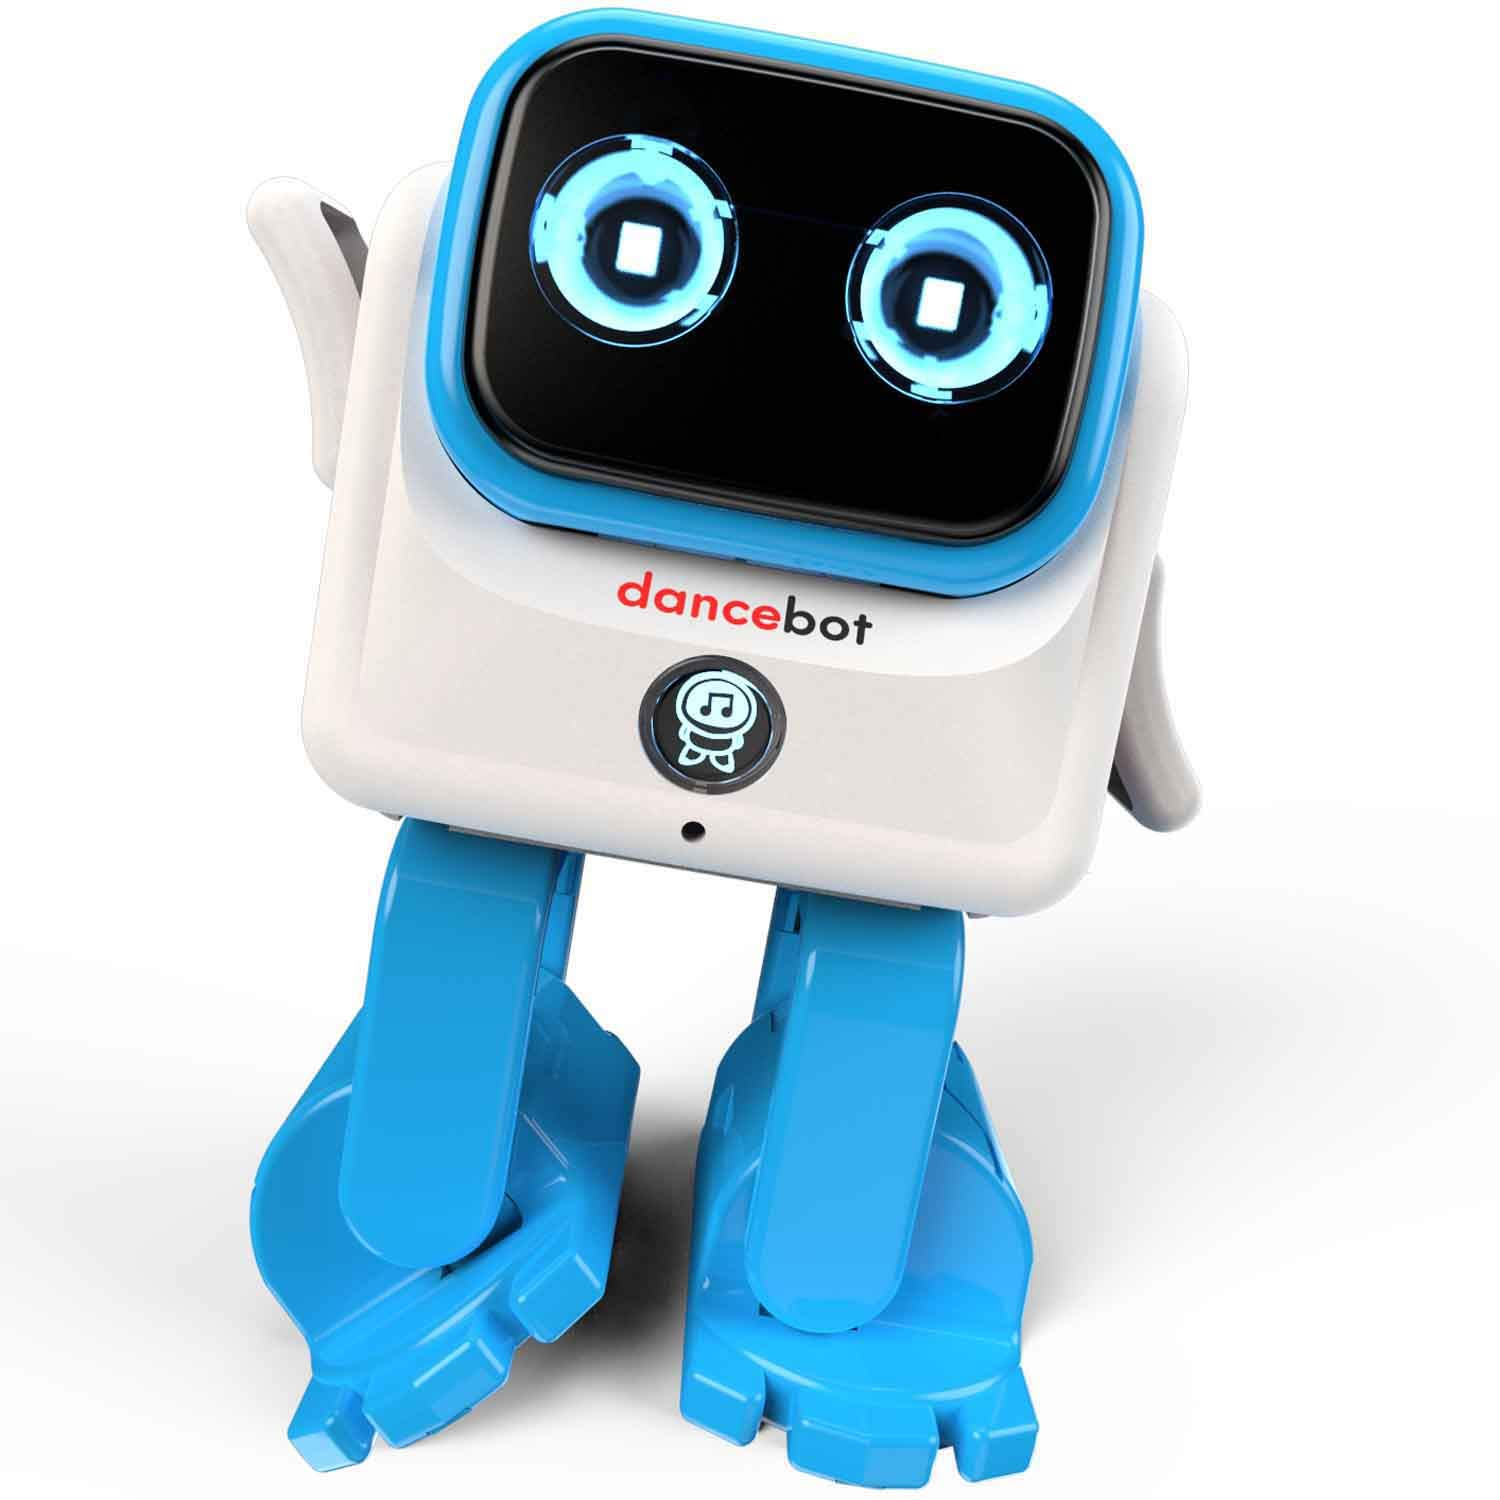 Echeers Kids Toys Dancing Robot for Boys and Girls, Educational Dancing Robot Toys for Kids with Stereo Bluetooth Speakers, Rechargeable Dance Robot Follow Music Beats Rhythm, All Age Children - Blue by ECHEERS (Image #3)